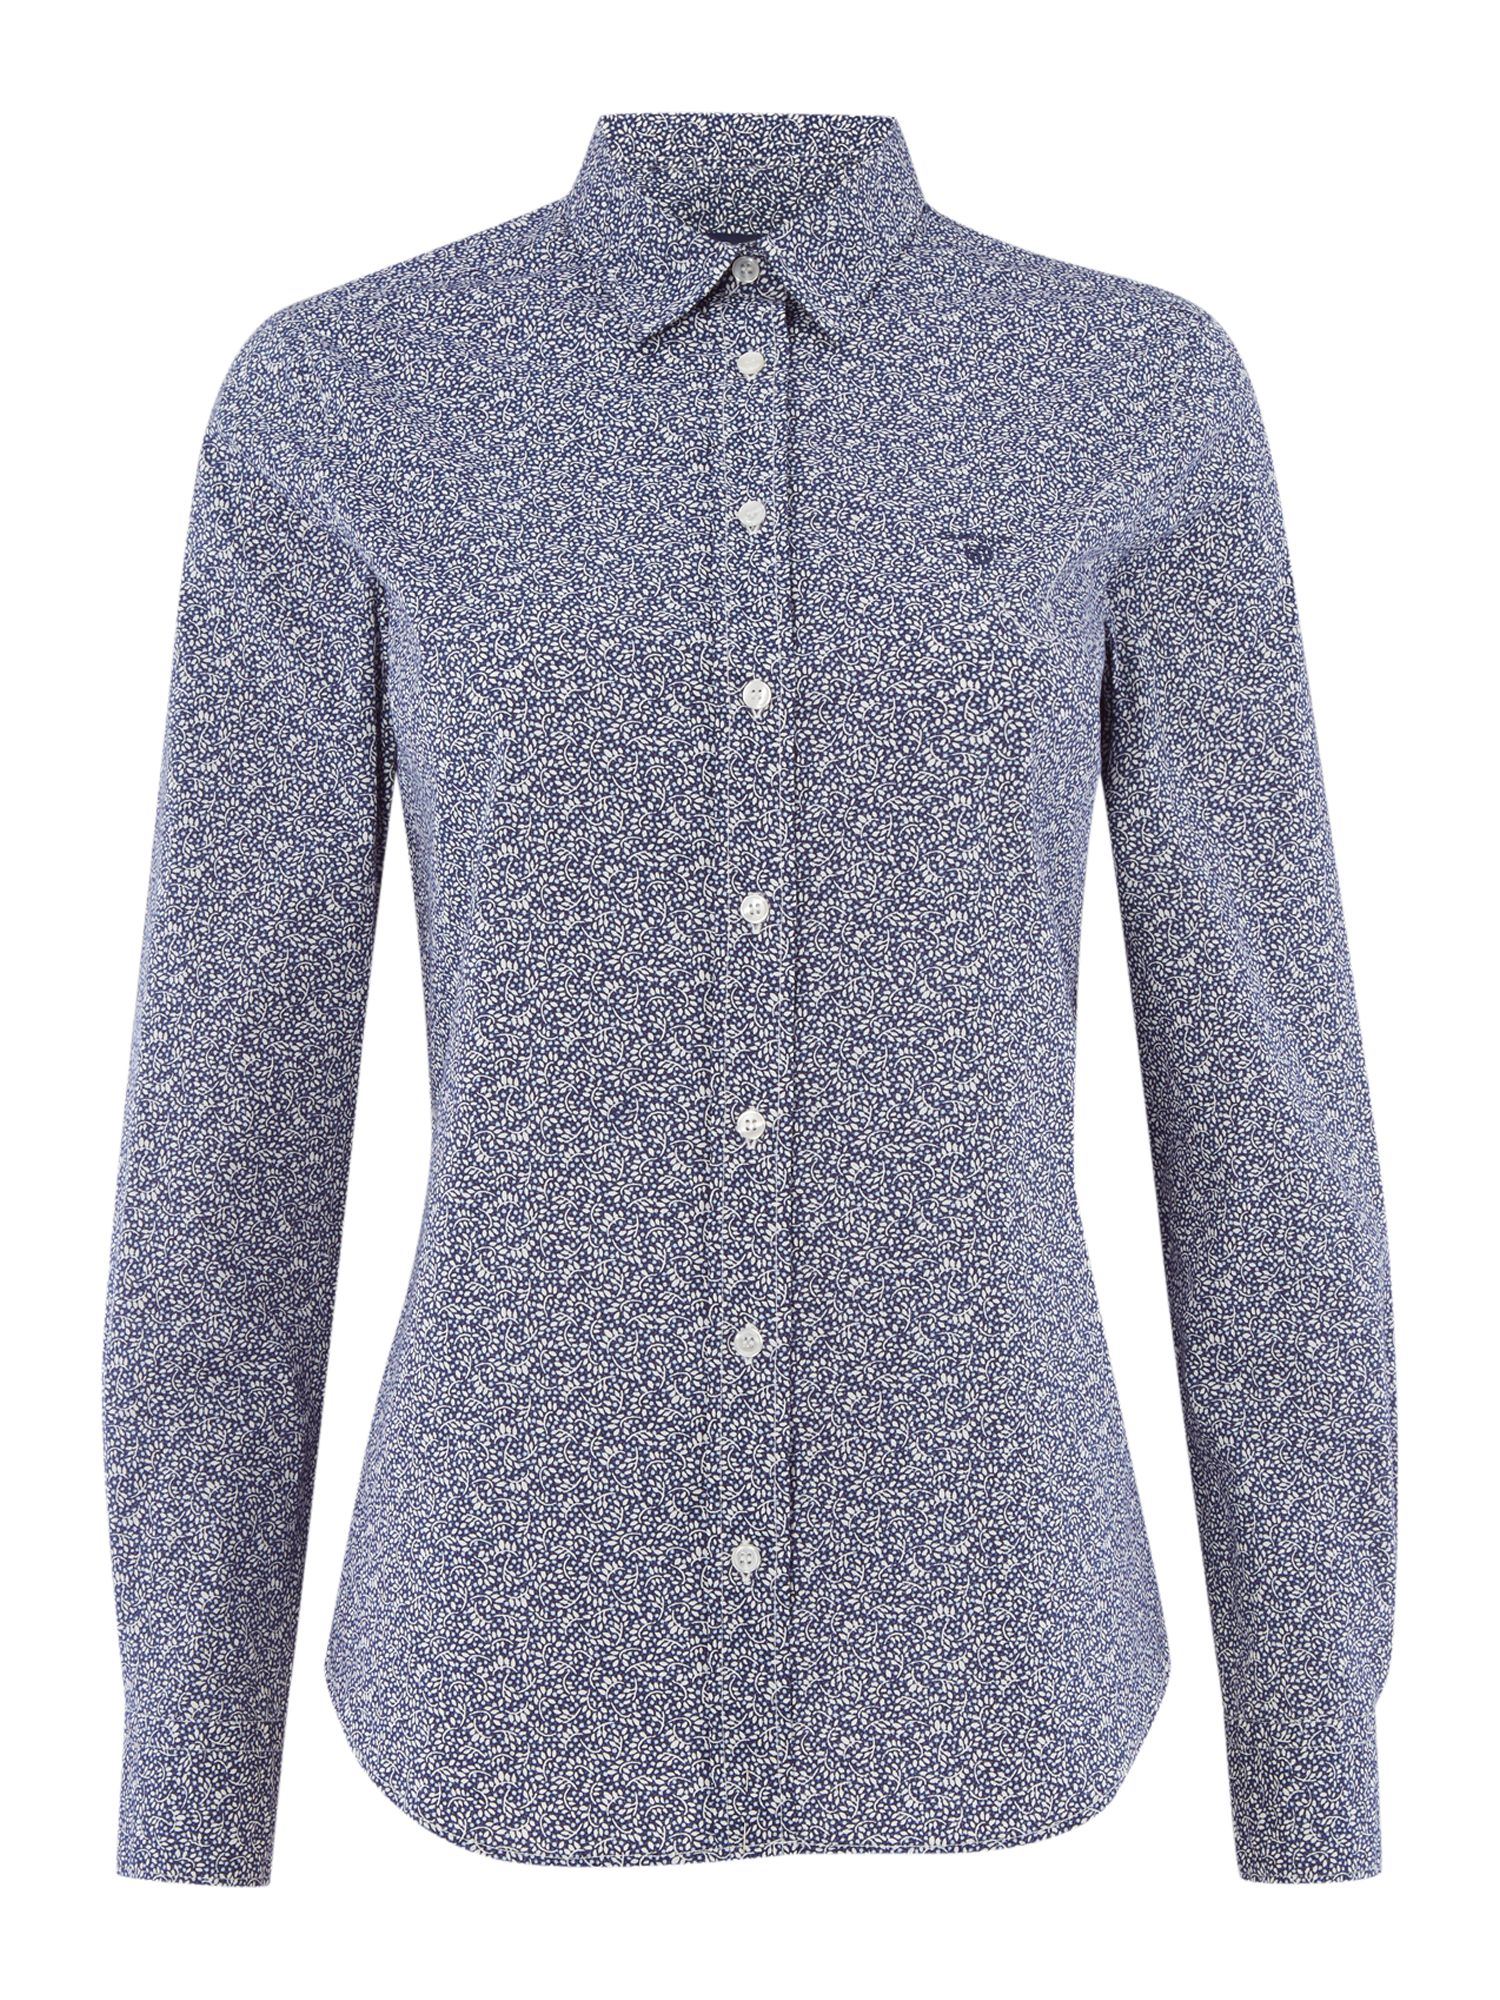 Gant Woven Dot Printed Shirt, Blue